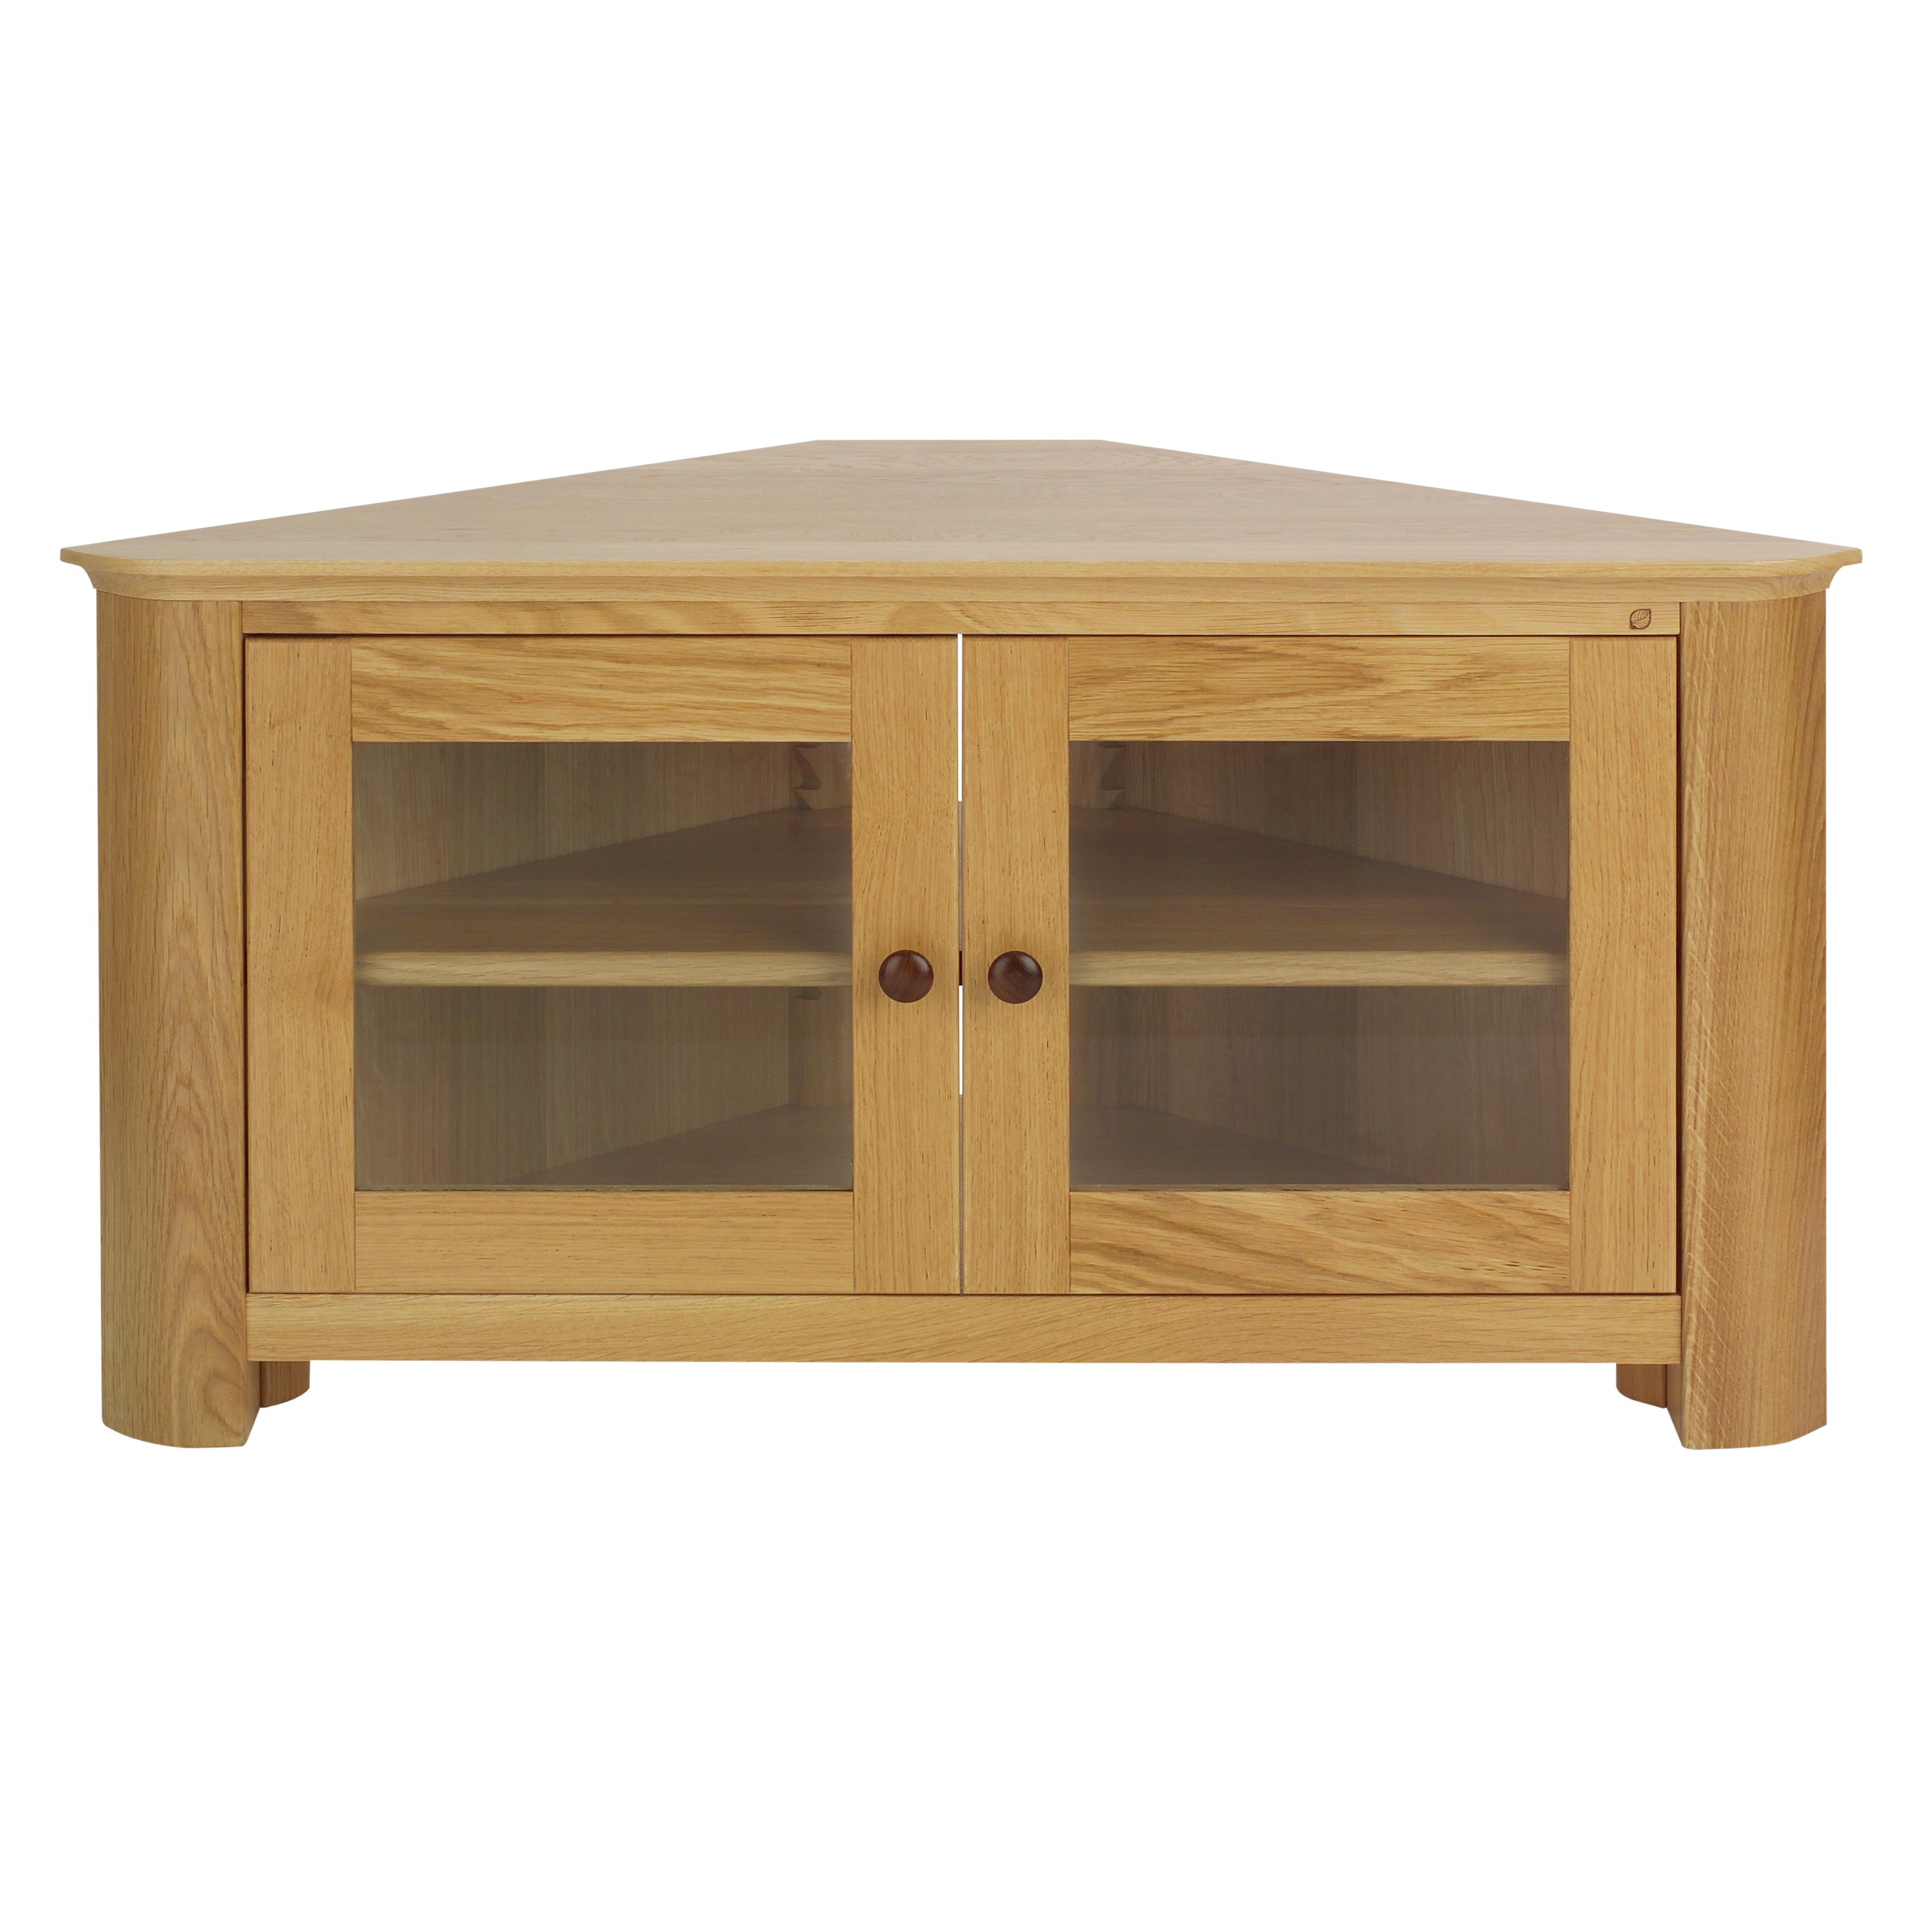 Oak Tv Cabinets With Doors Throughout Most Recently Released Medium Oak Tv Stand Or Corner With Plus Cabinet Together Stands Flat (Gallery 18 of 20)